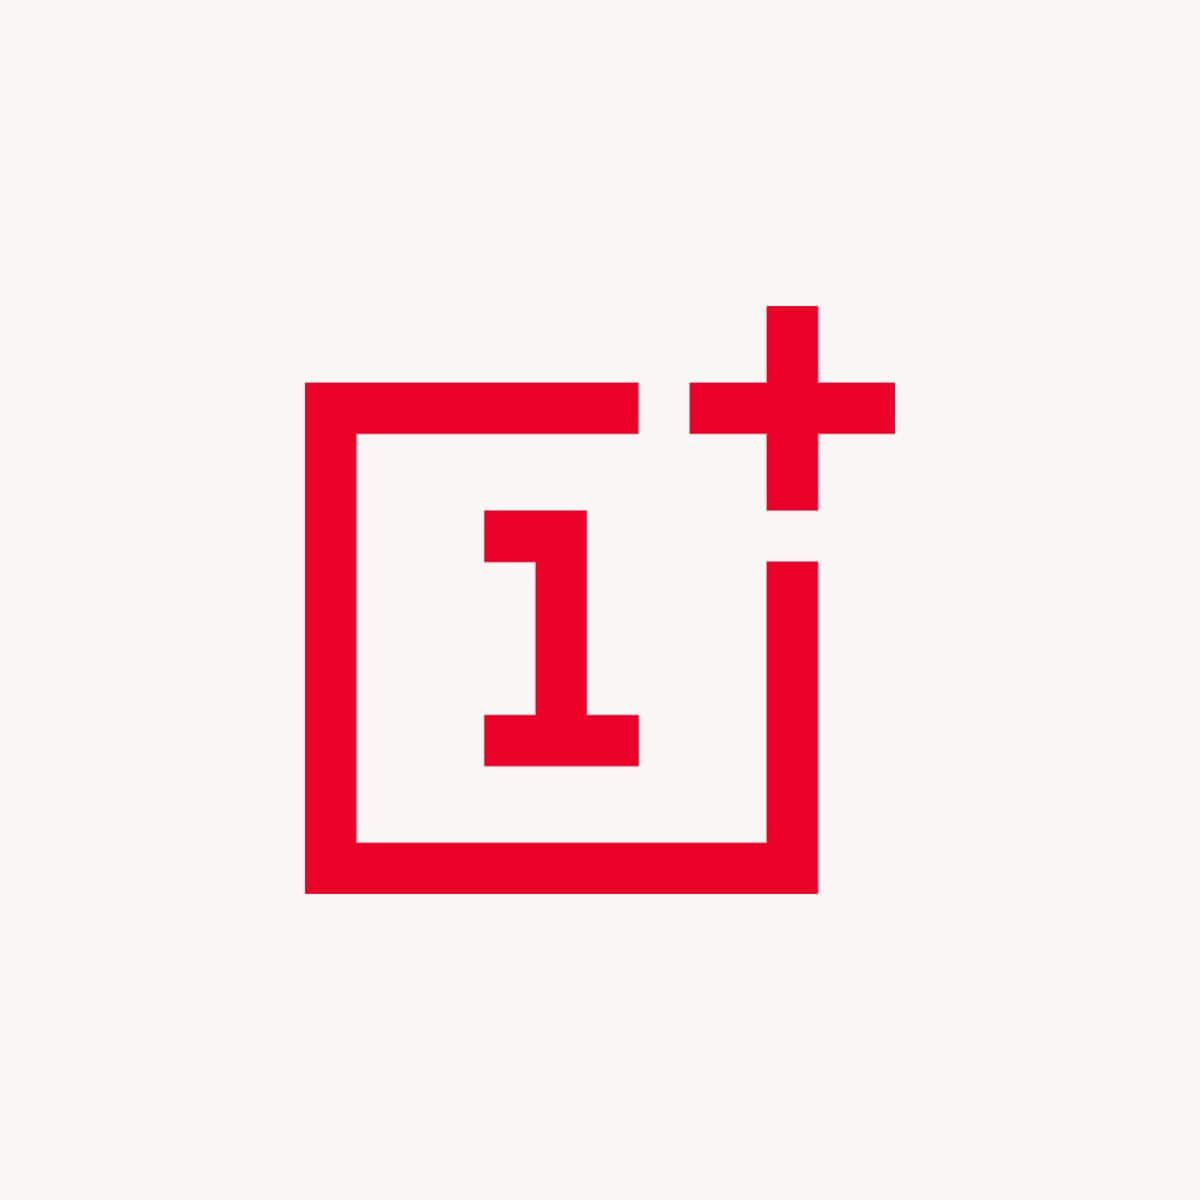 OnePlus 7 Pro - Trade in to Trade up - upgrade to a OnePlus 7 Pro from $379